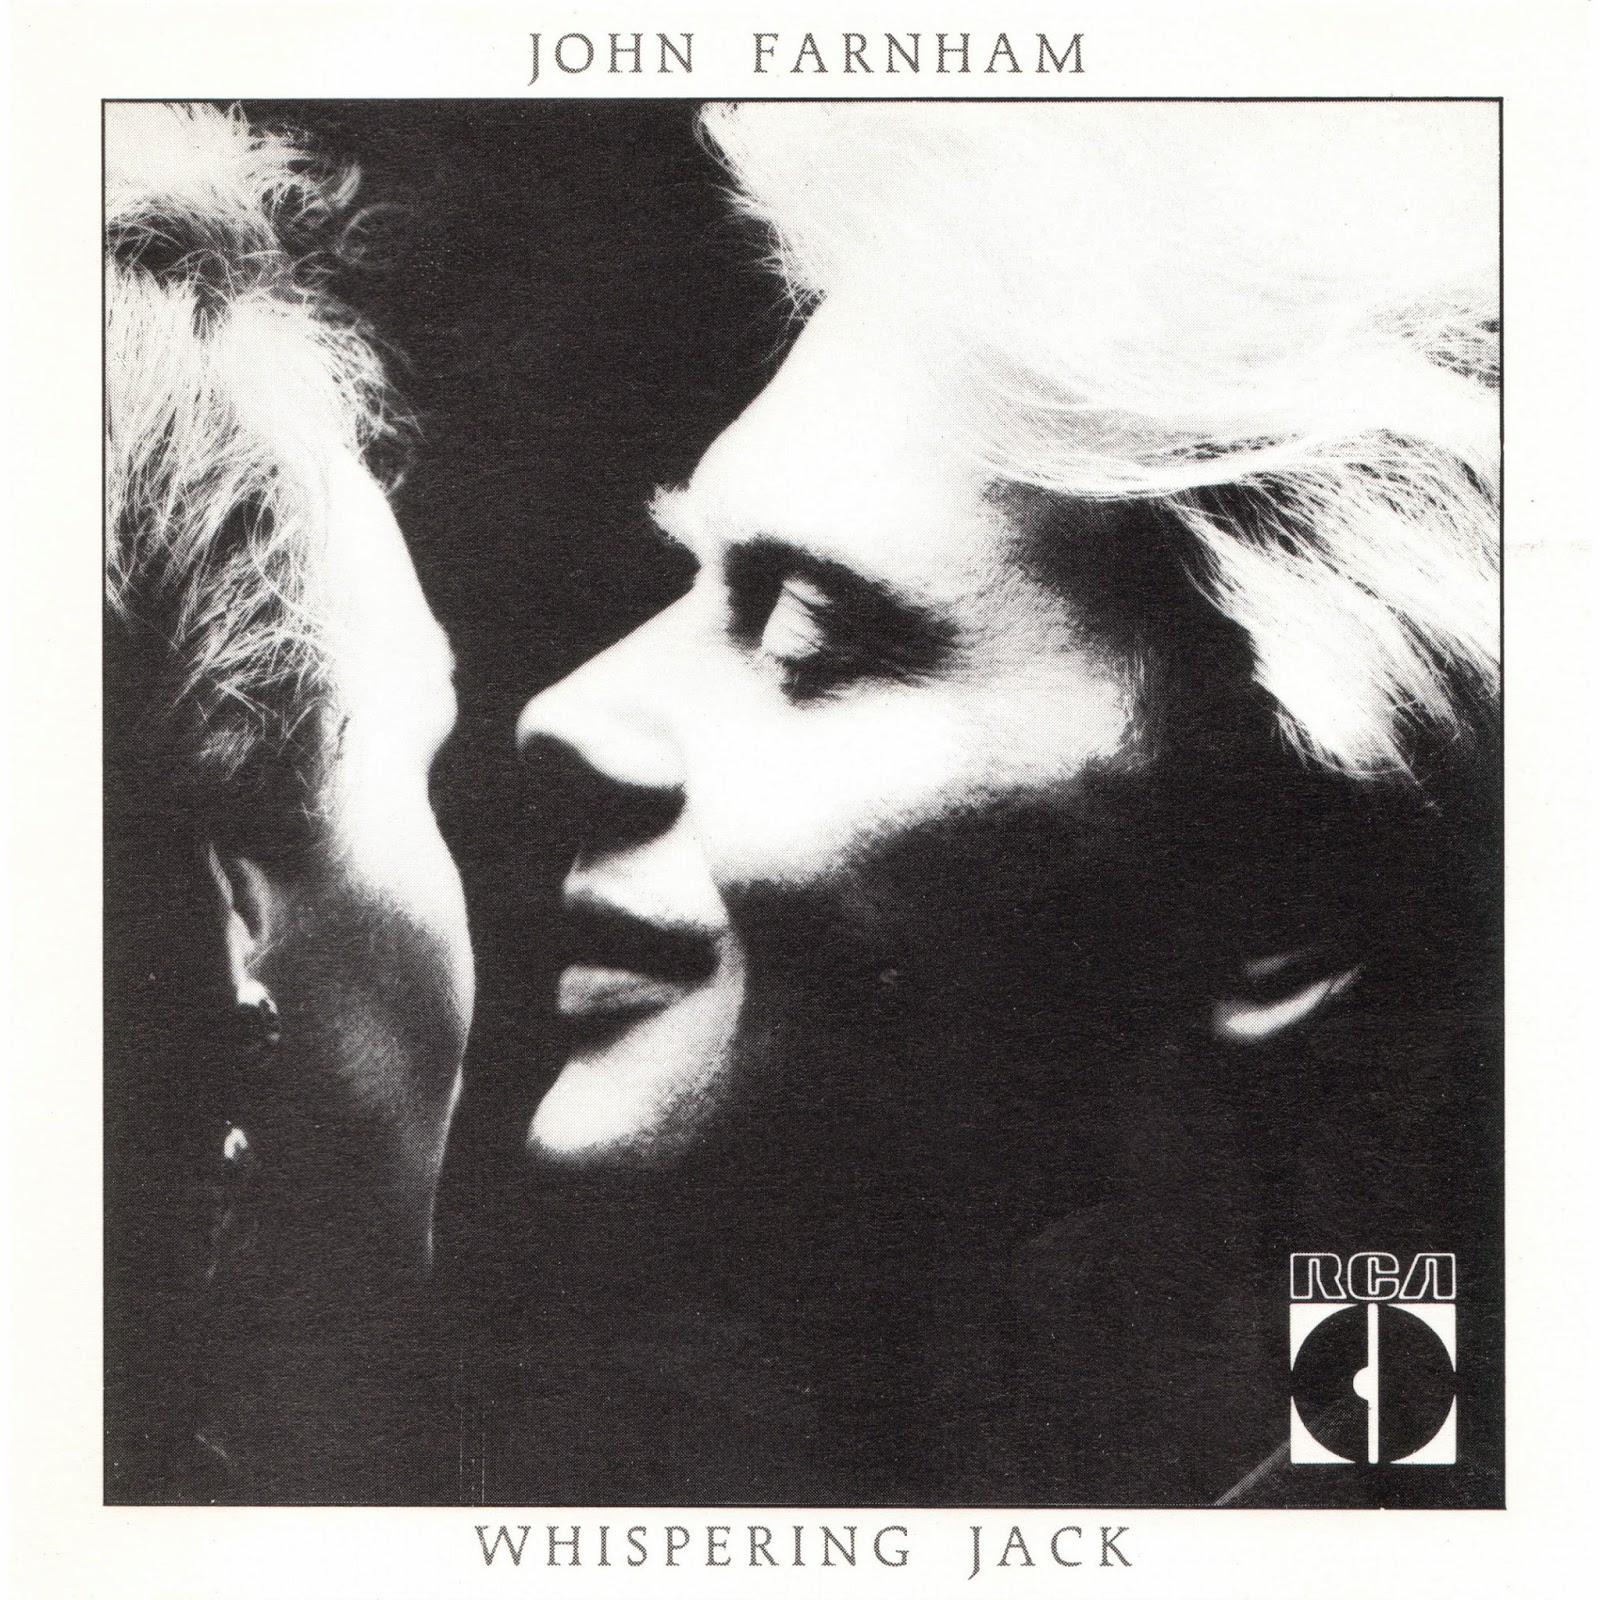 John Farnham Whispering Jack 1986 aor melodic rock music blogspot full albums bands lyrics